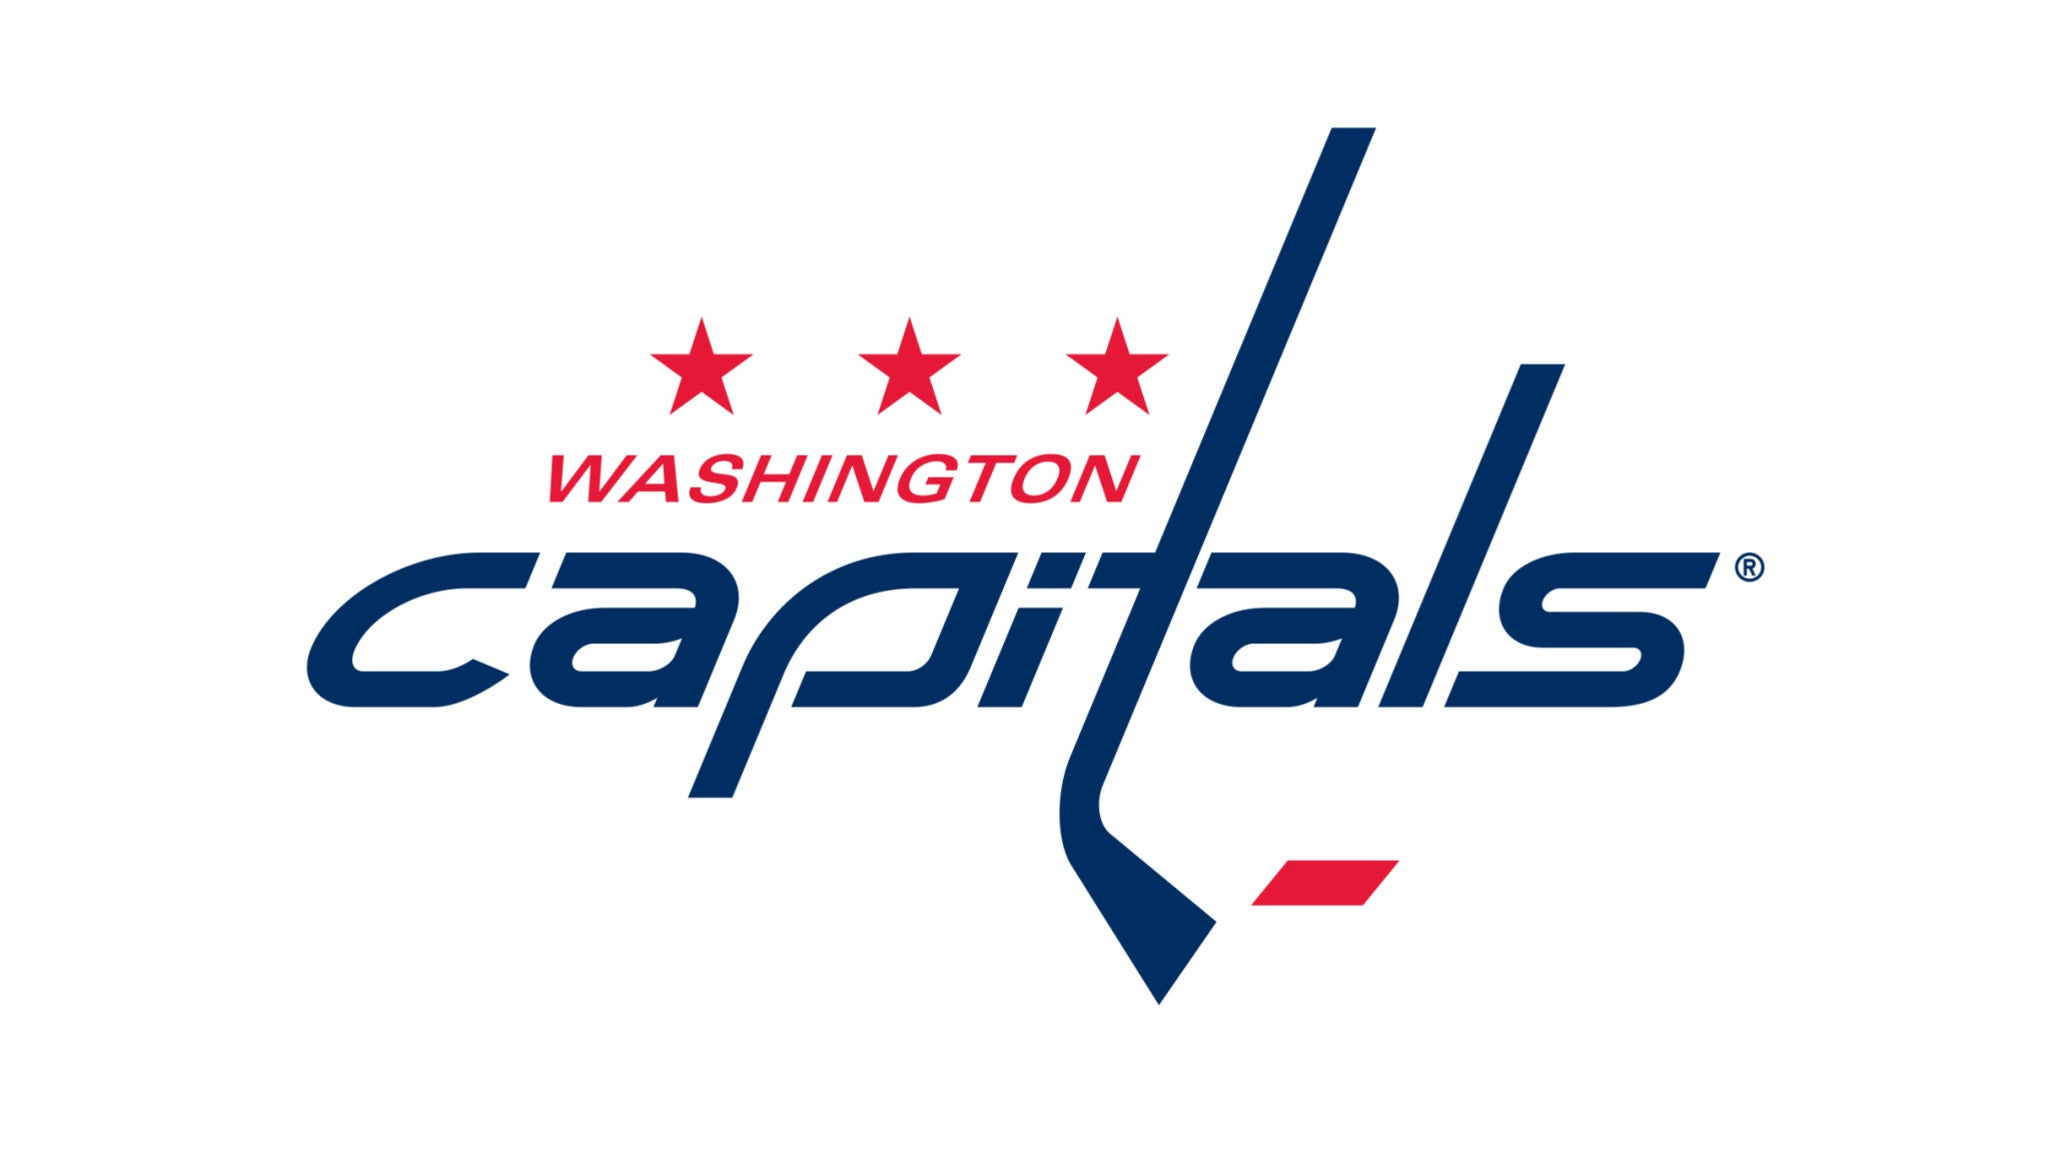 Washington Capitals vs. New York Rangers